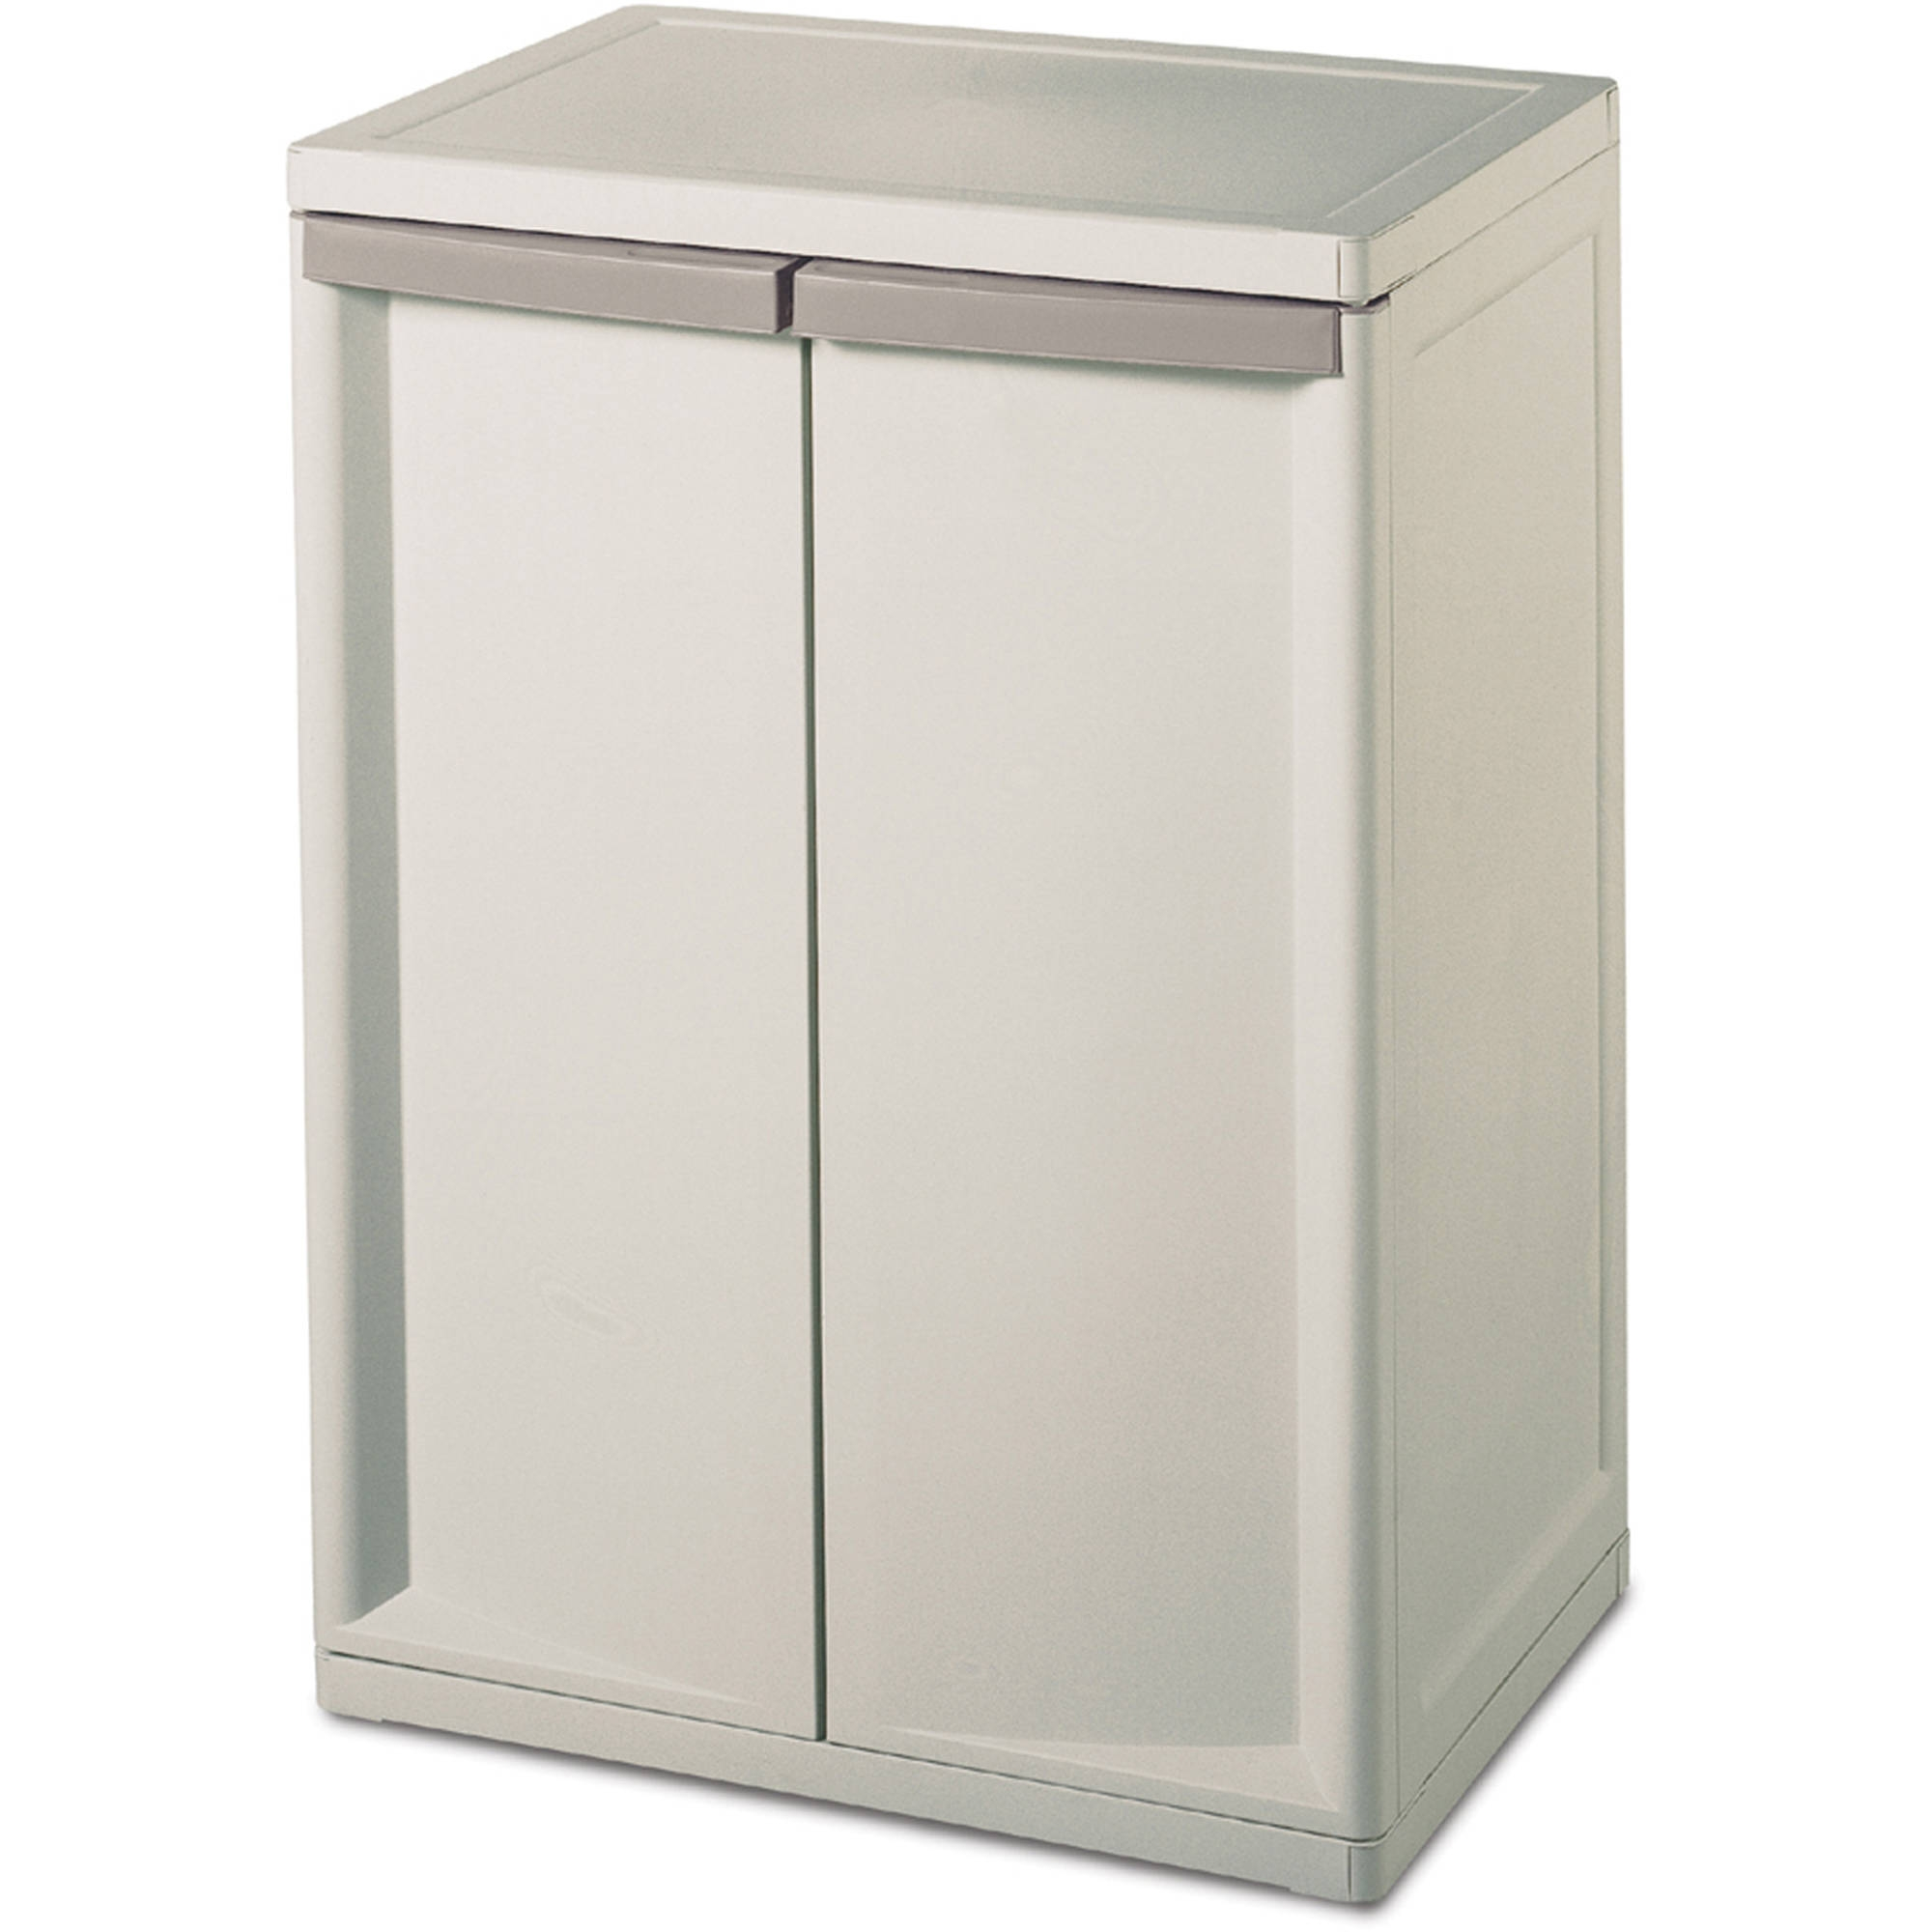 Permalink to Plastic Clothing Storage Cabinets